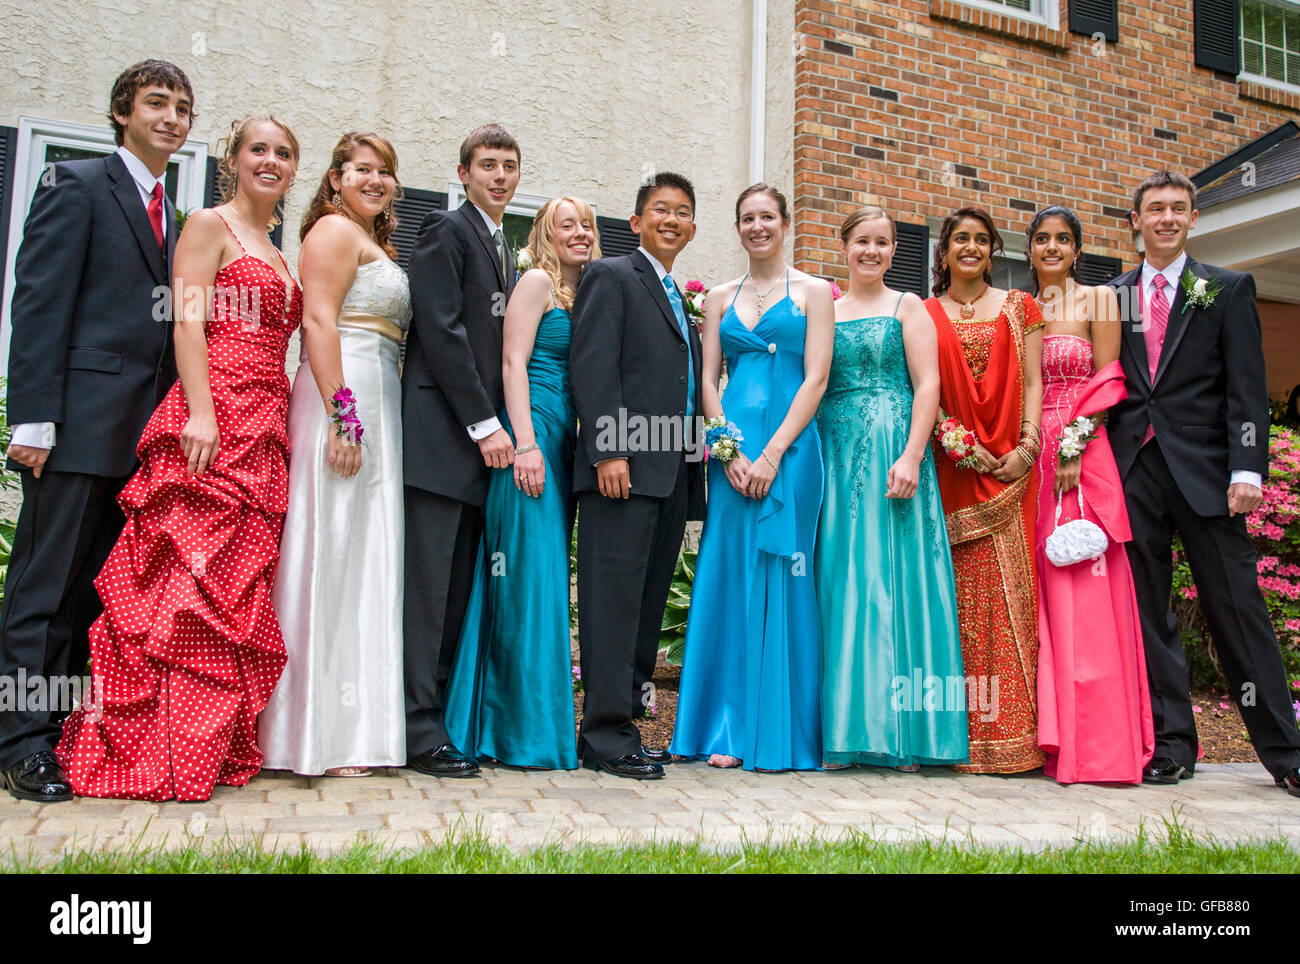 Formal Dresses Stockfotos & Formal Dresses Bilder - Alamy